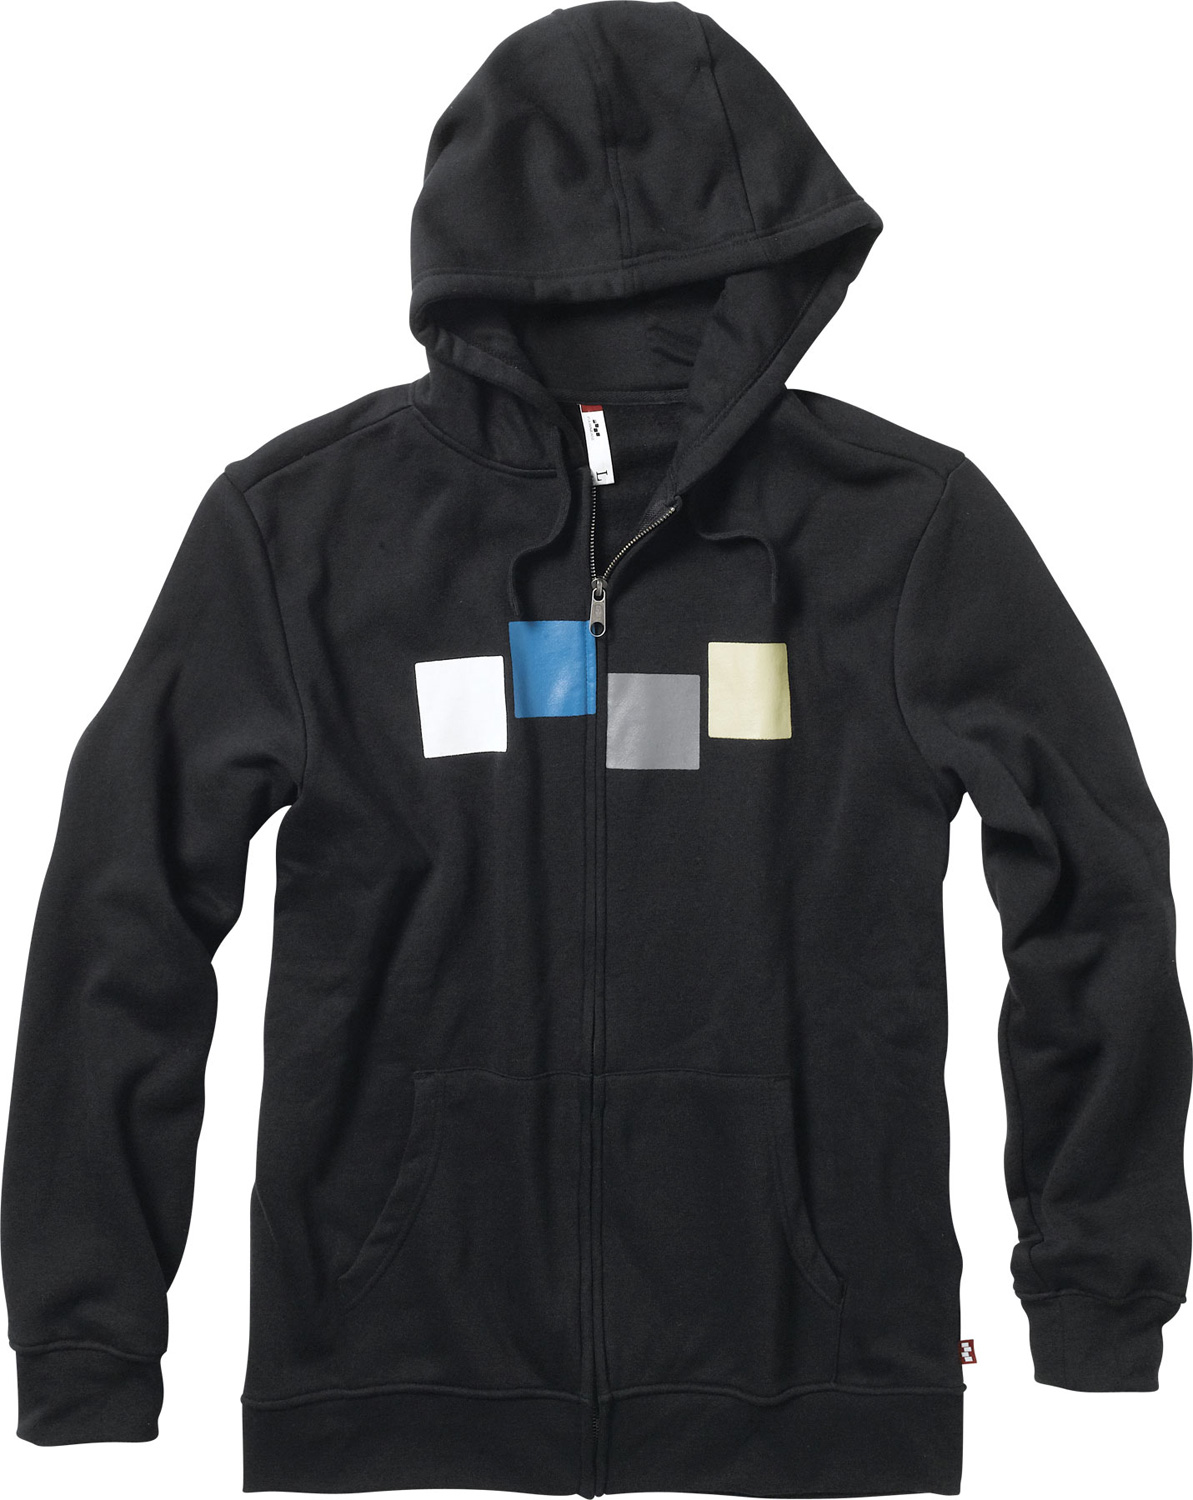 Snowboard Key Features of the Foursquare Rig Zip Hoodie: Material: Brushed Fleece Full zip hoodie 60% cotton40% polyester, 300 gms. 100% cotton jersey hood lining. Screenprint art Regular fit - $27.95